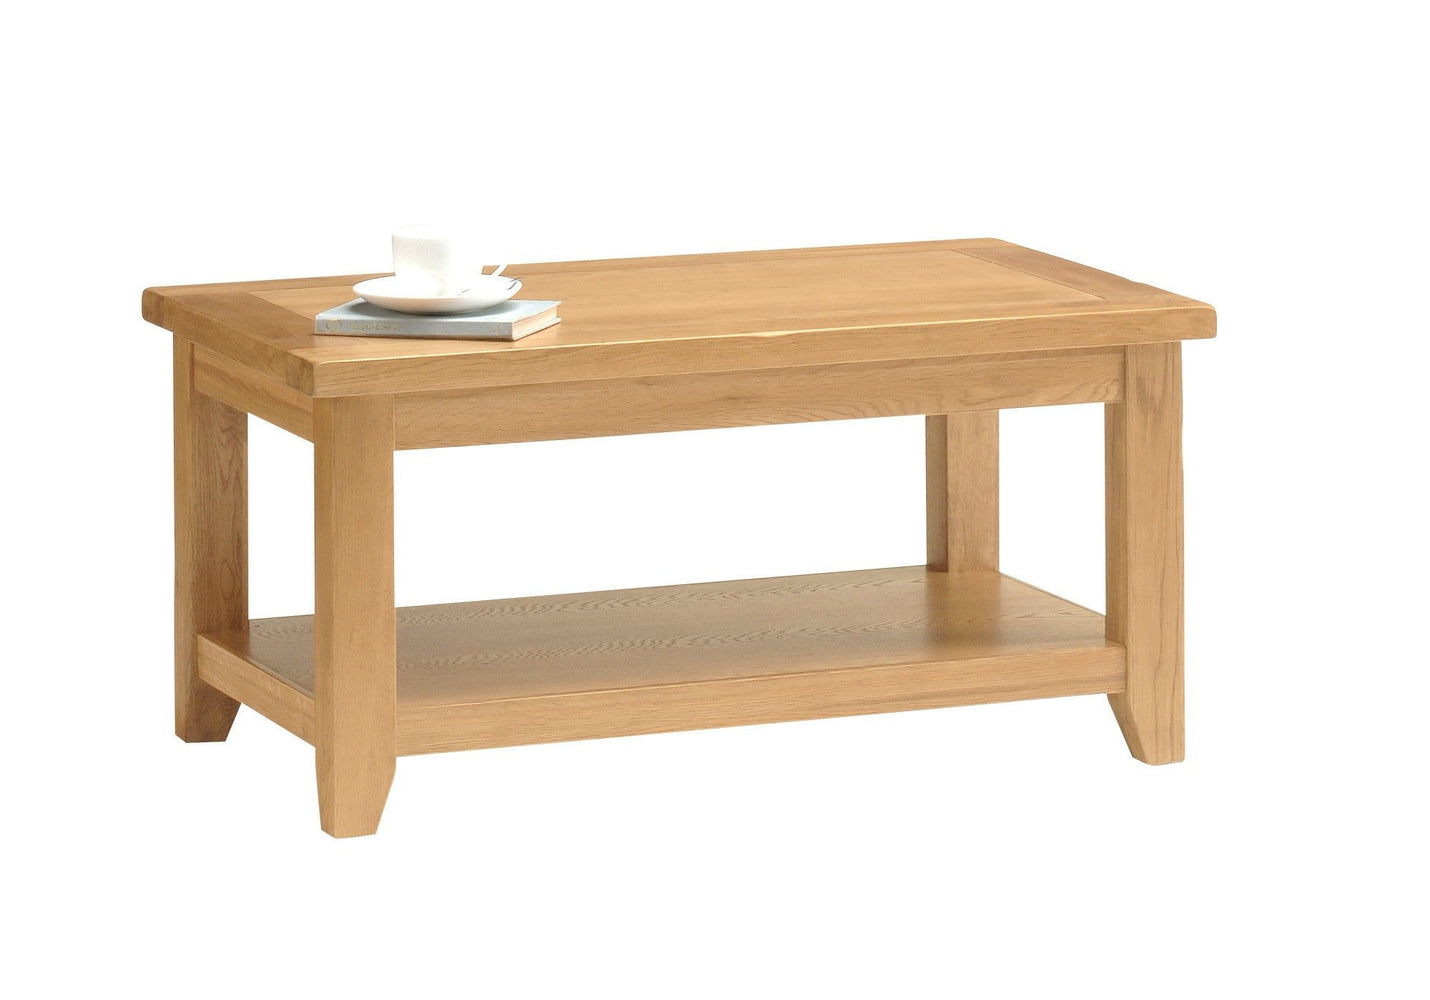 Oakland Oak Medium Coffee Table